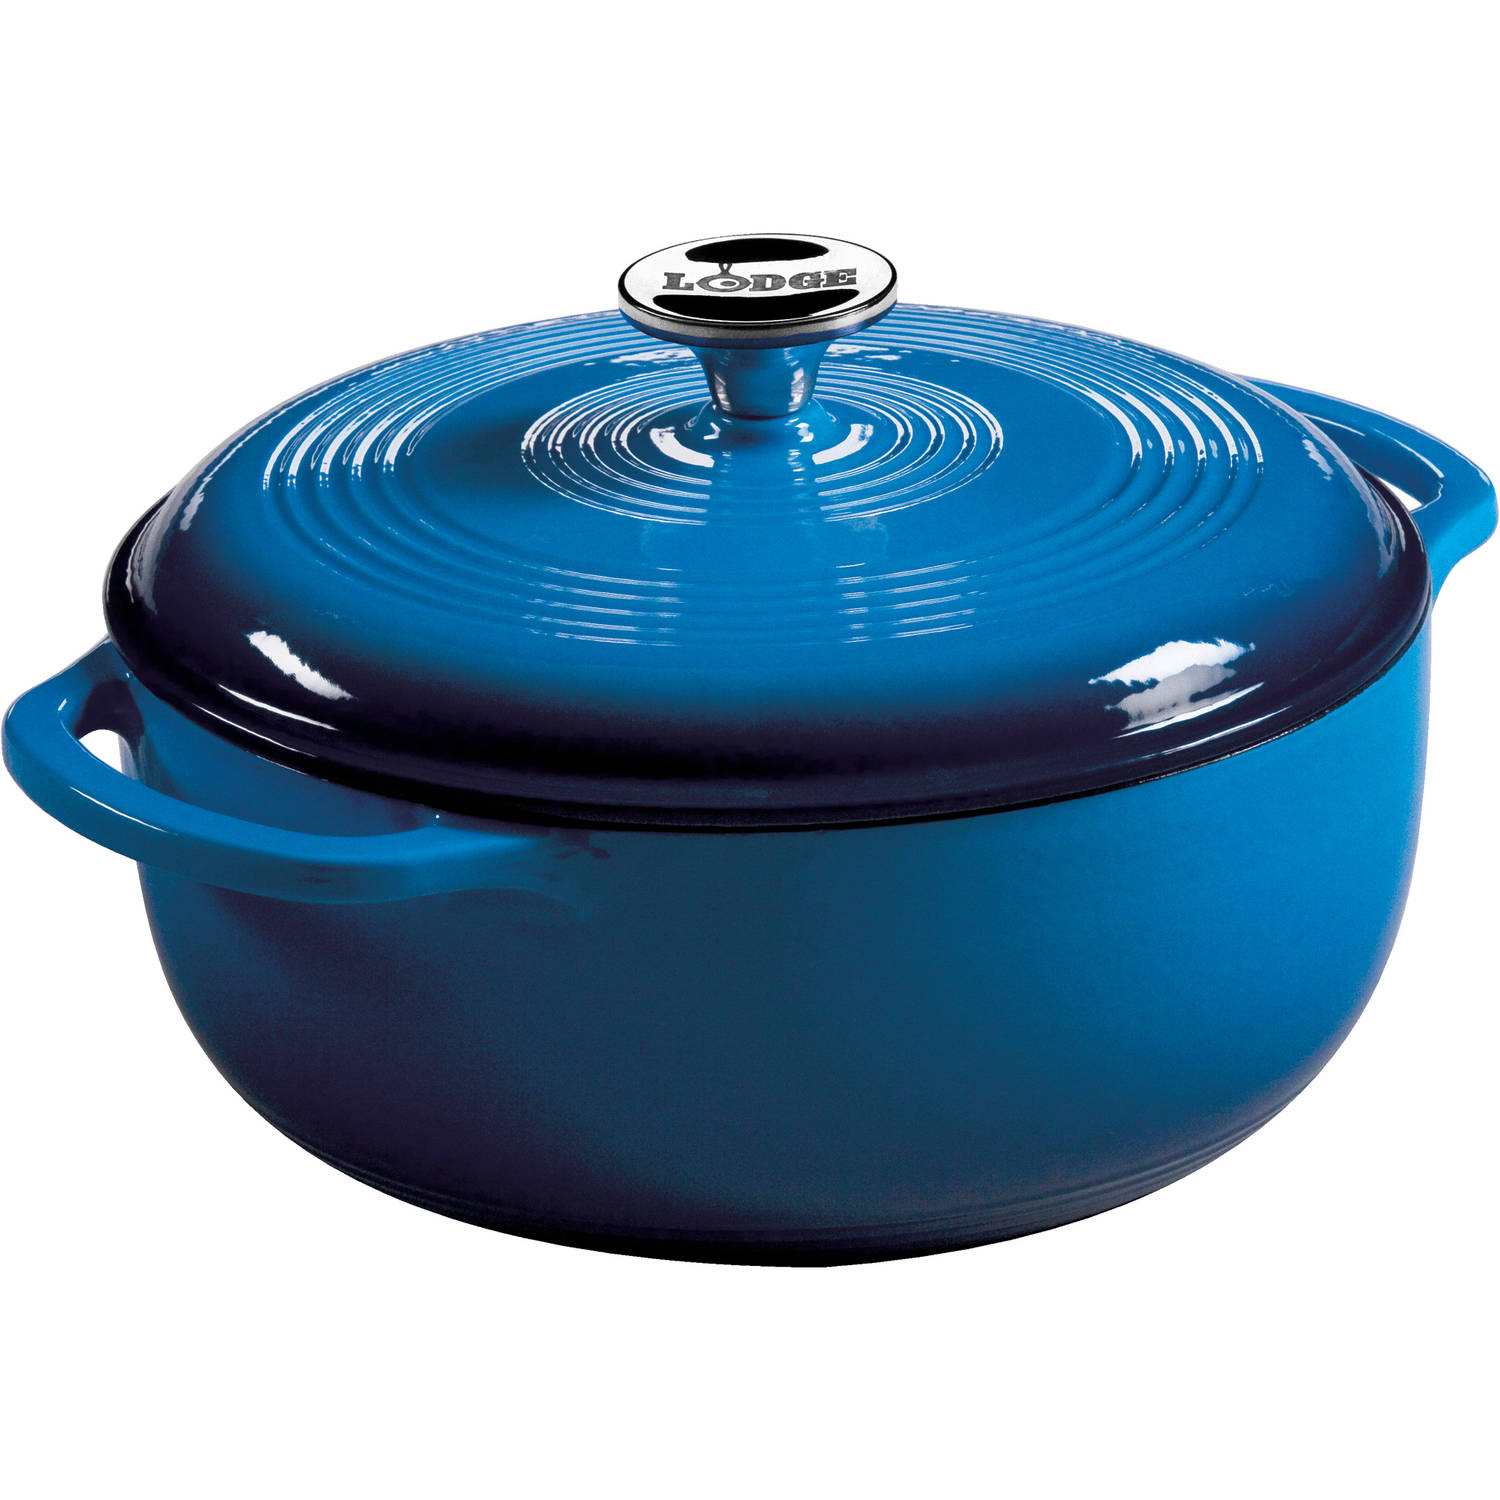 Lodge Enameled Cast Iron 4.6-Quart Dutch Oven, Blue